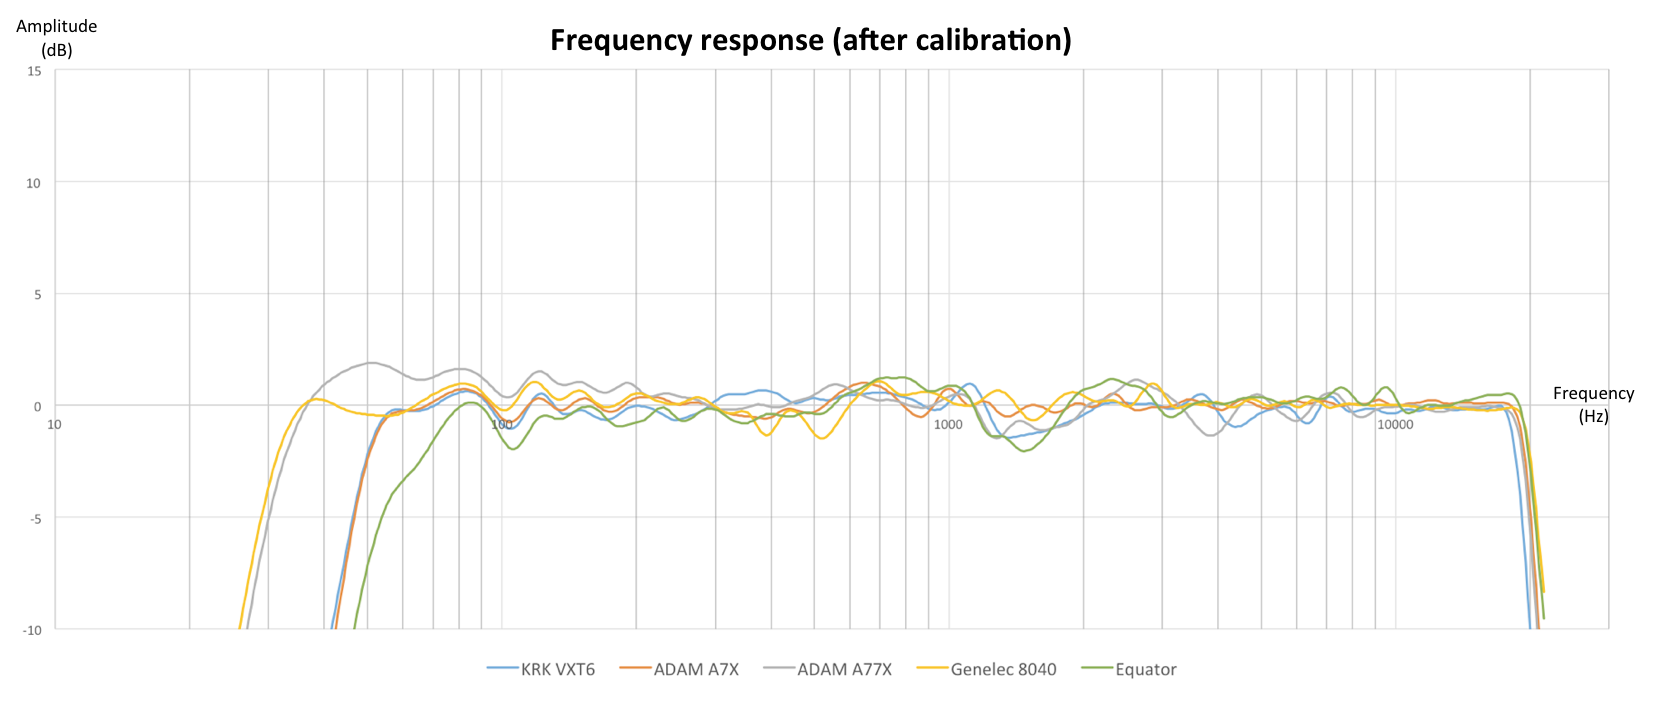 SW_C1_Frequency_response_after